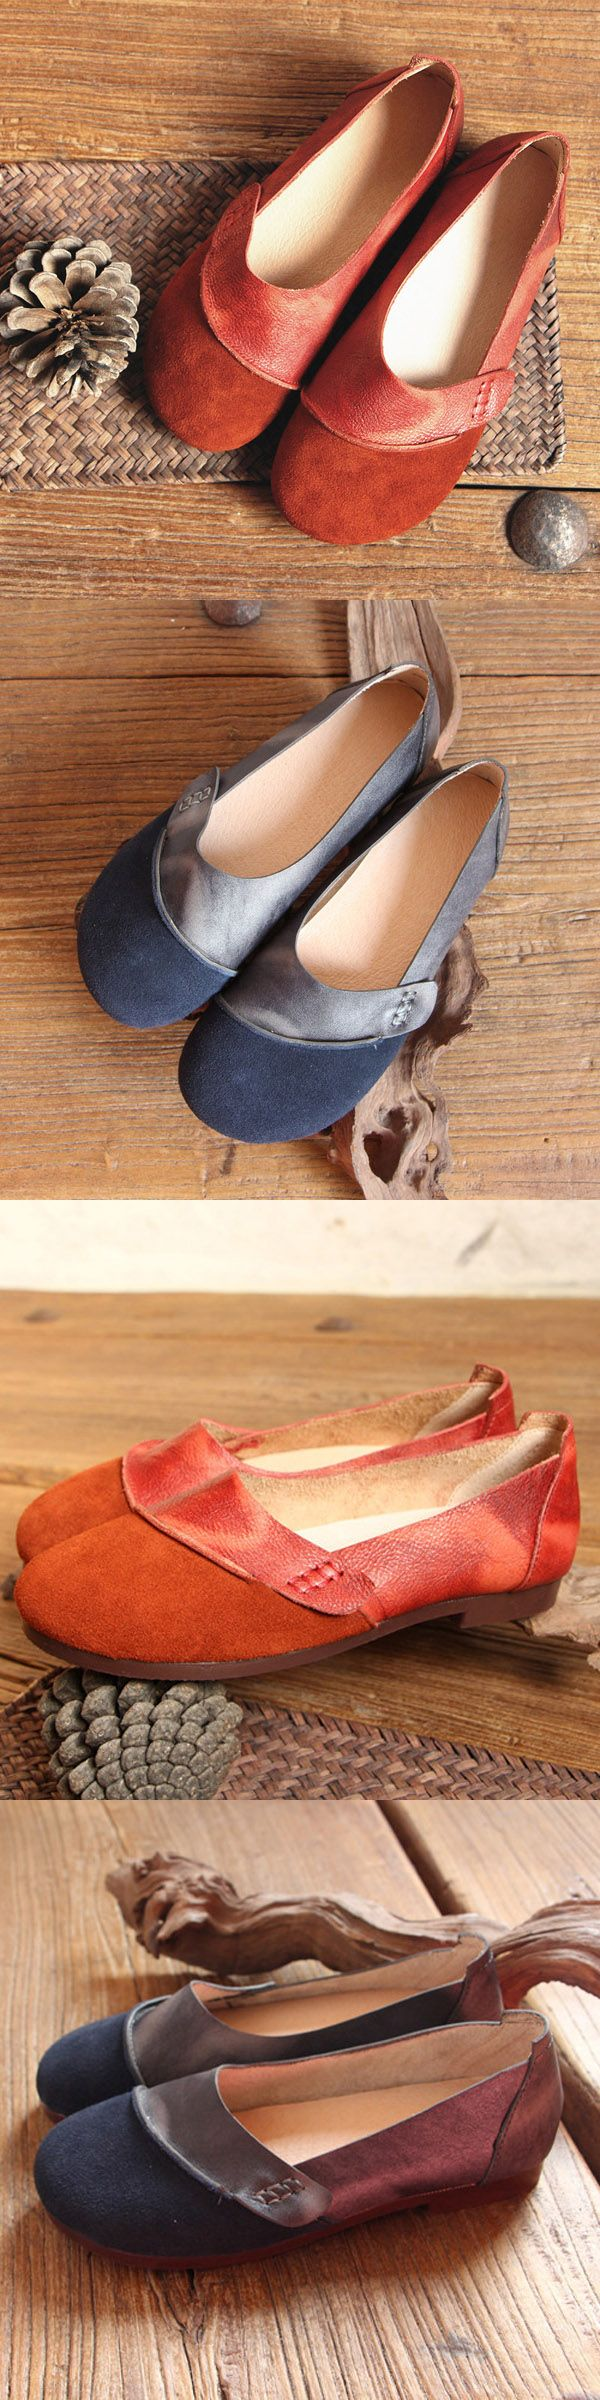 US$43.99 Socofy Genuine Leather Vintage Comfortable Soft Flat Shoes_Women Flat Shoes_Leather Shoes For Woman